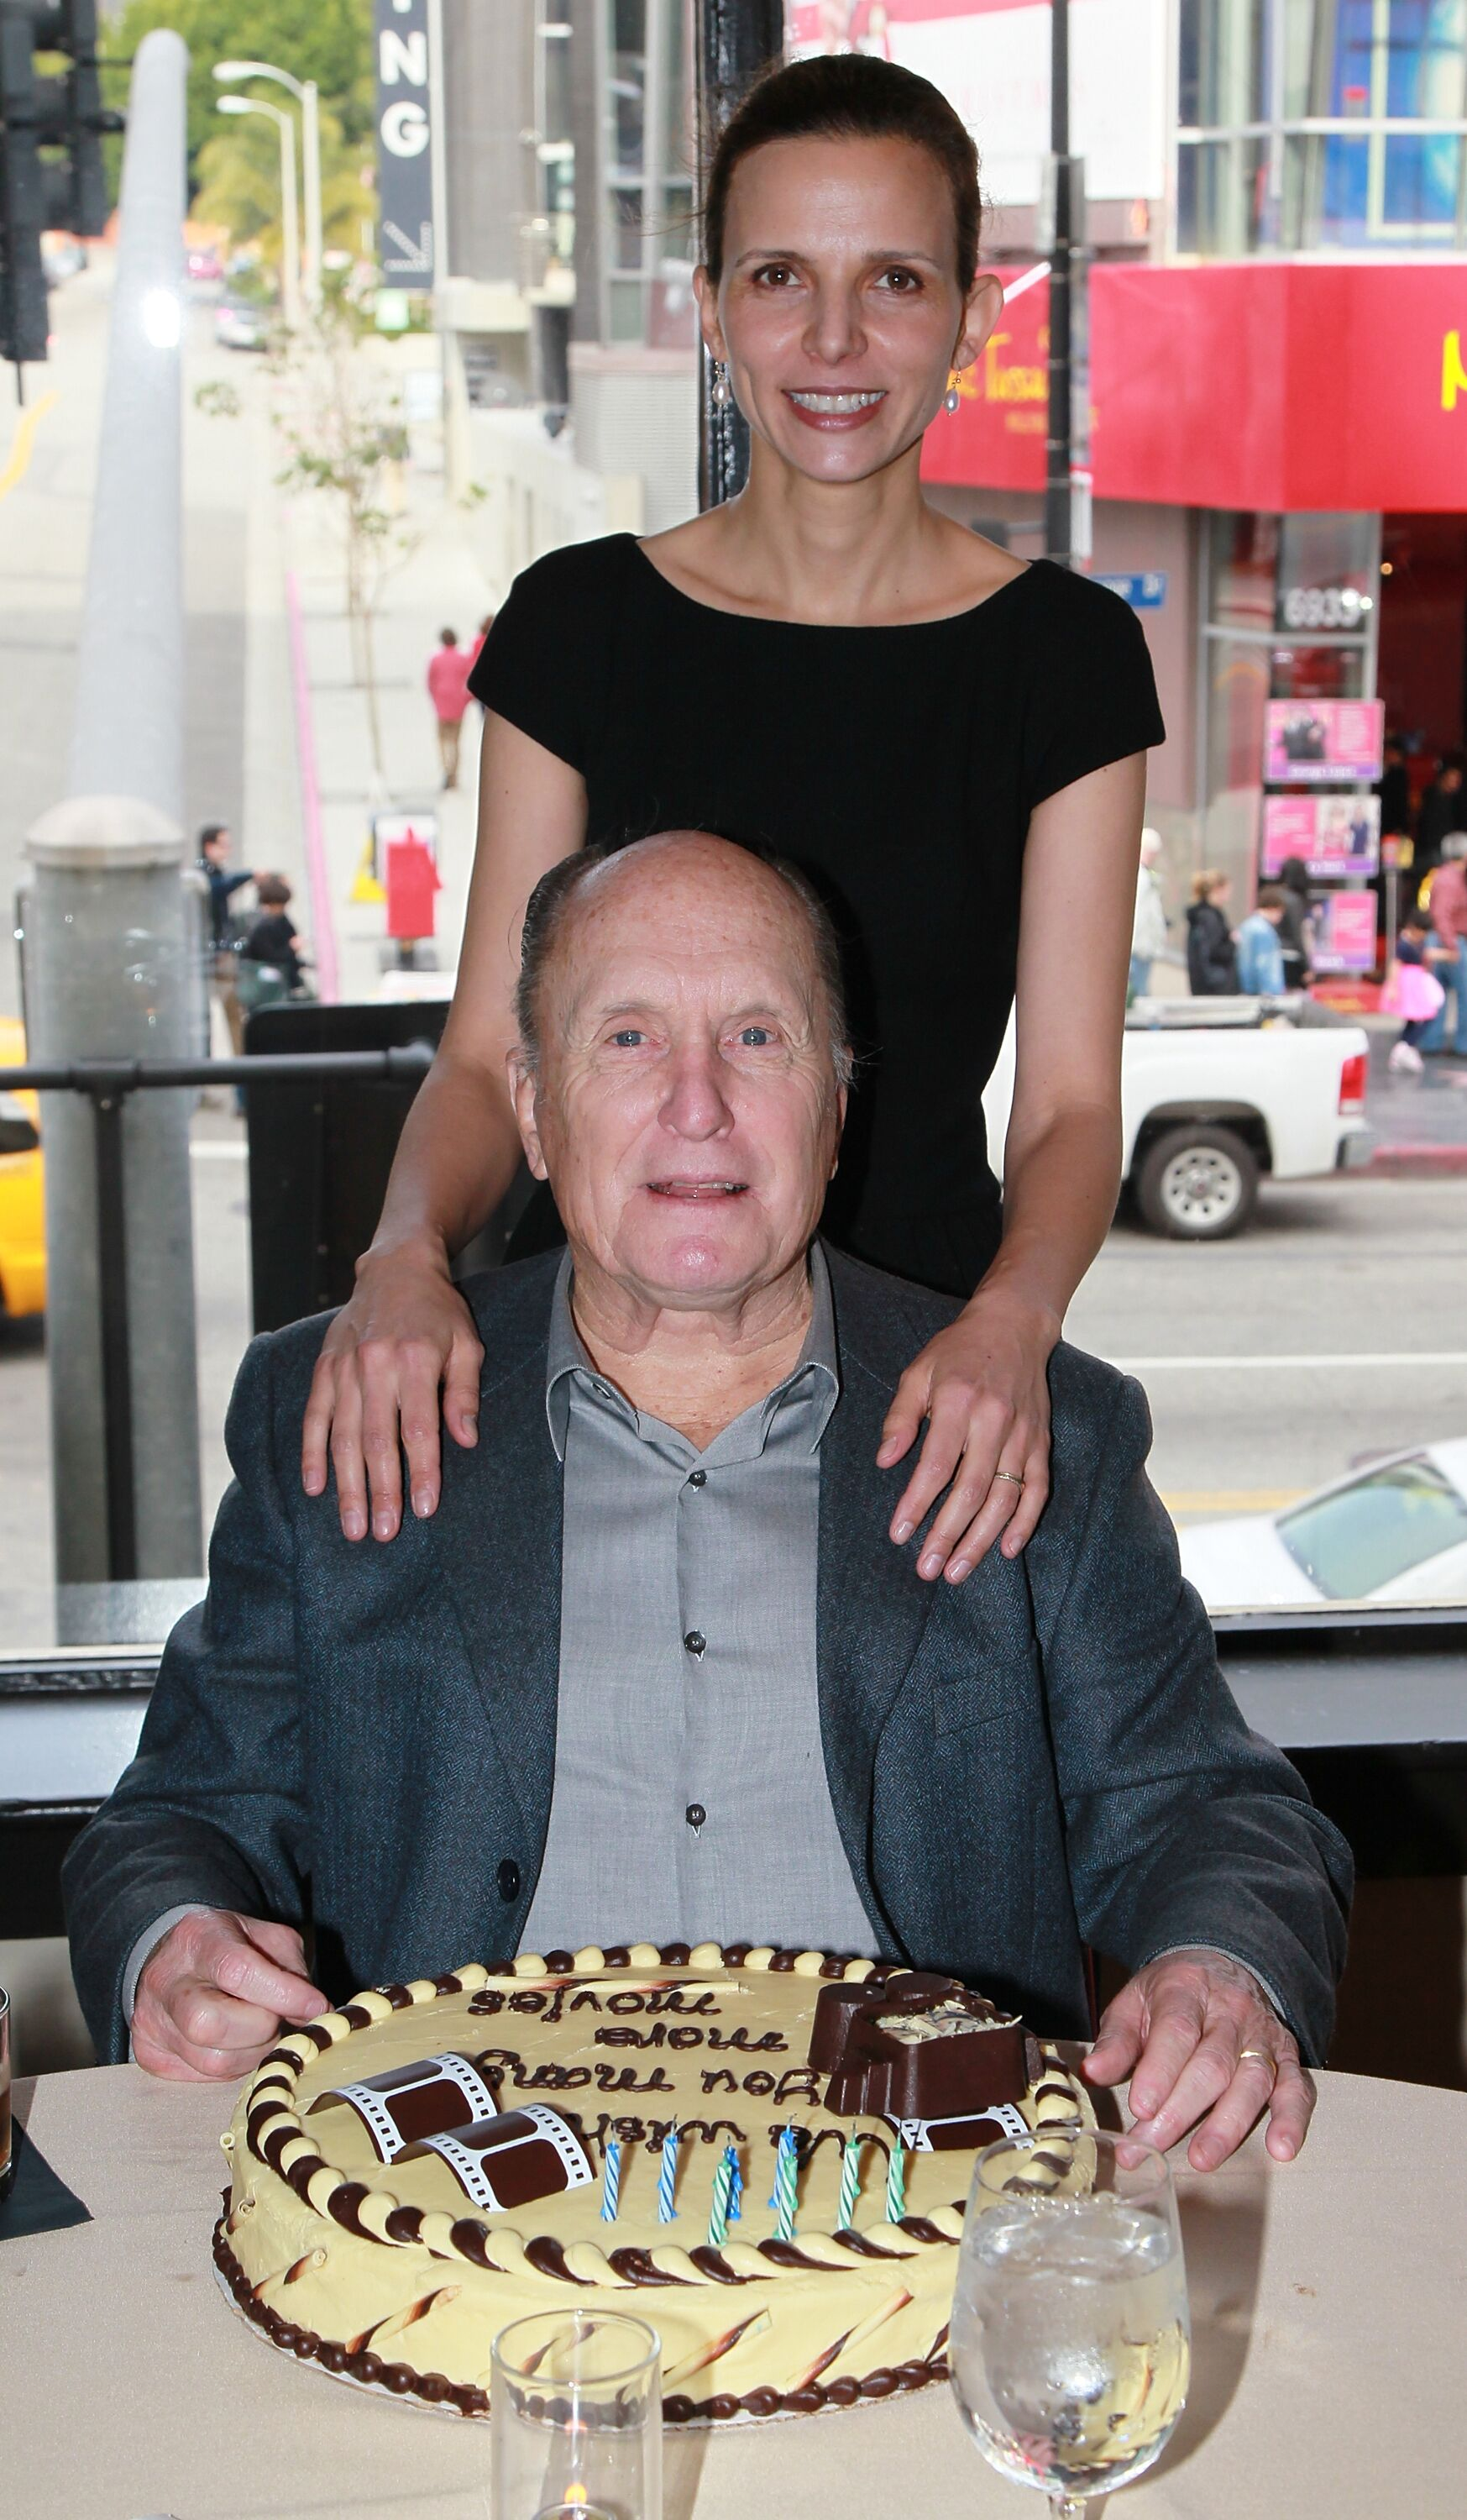 Robert Duvall and Luciana Pedraza at the Hollywood Roosevelt Hotel reception.   Source: Getty Images